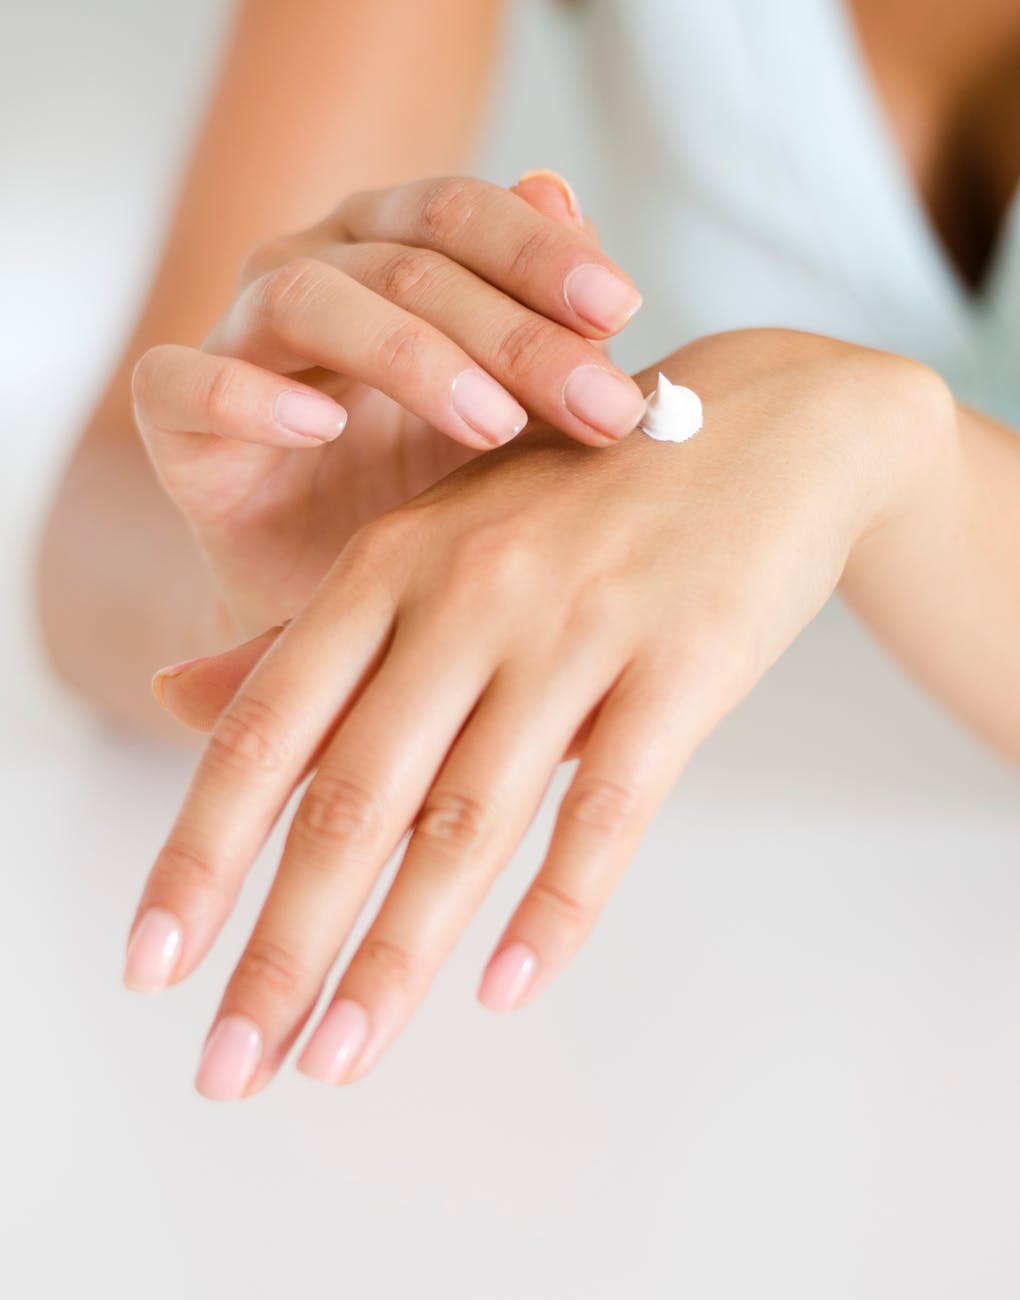 Supplements for Dry Skin in Winter